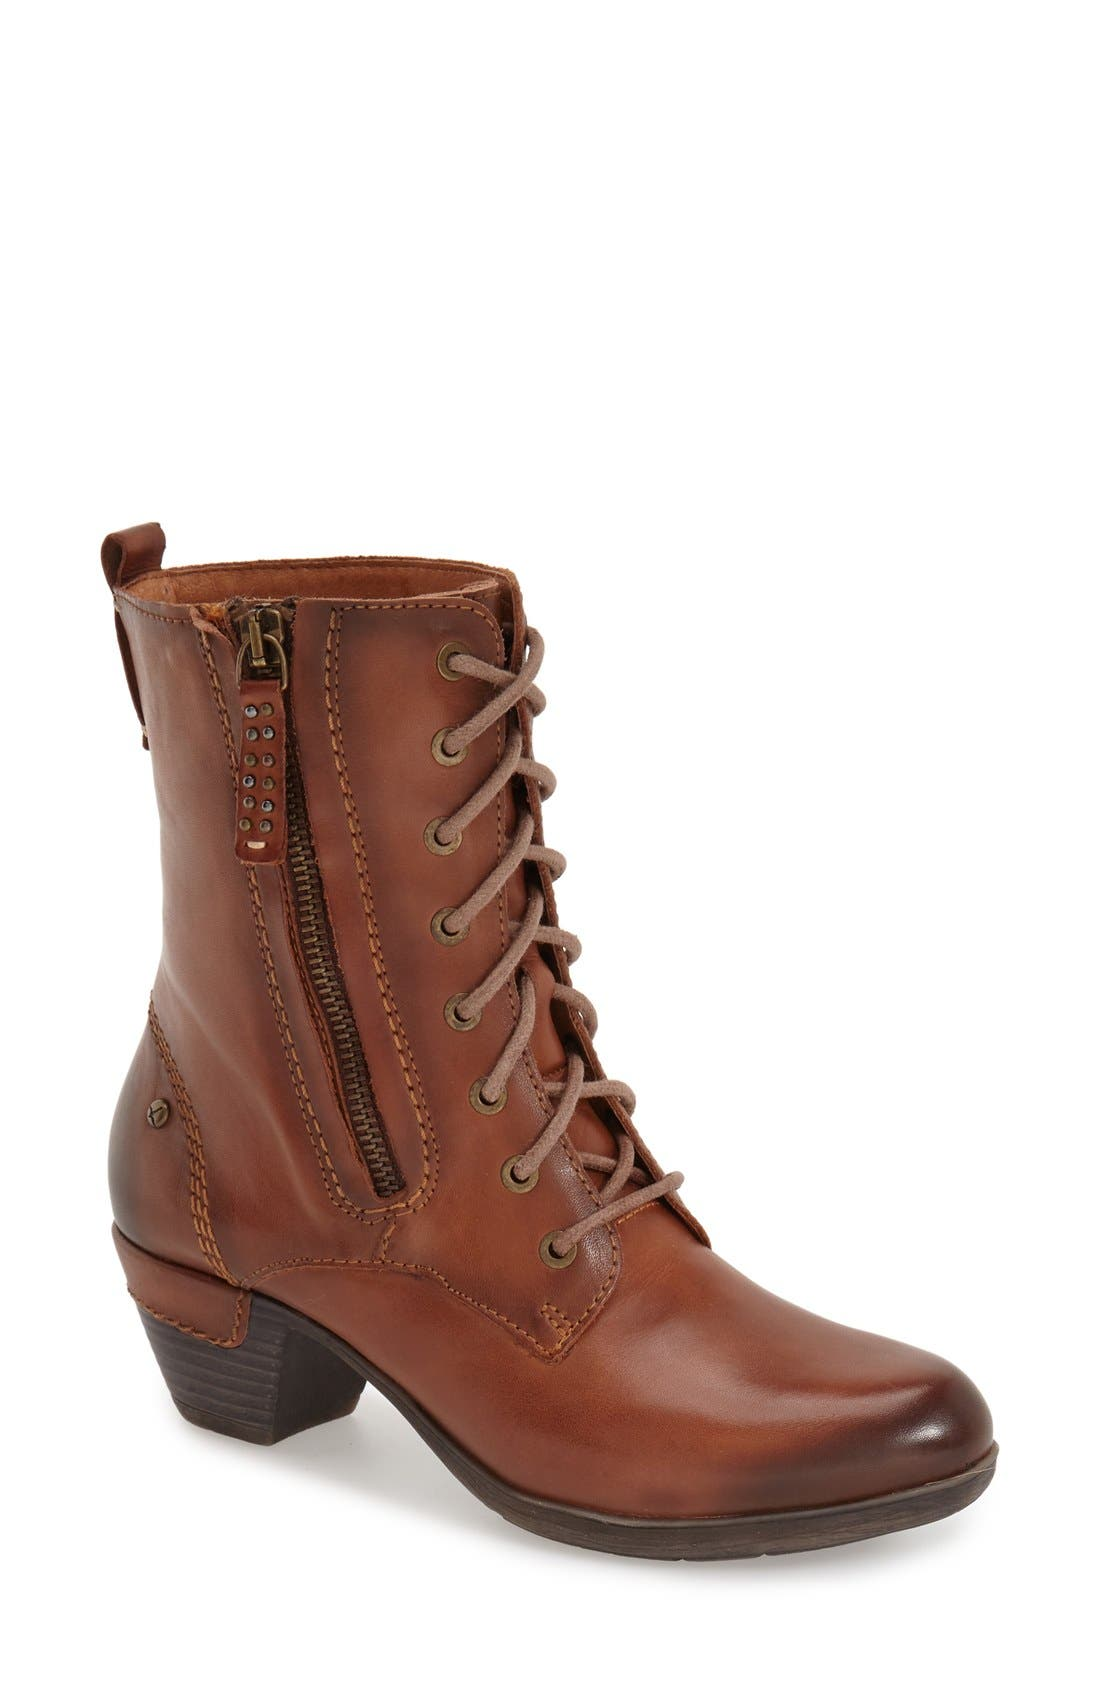 Alternate Image 1 Selected - PIKOLINOS 'Rotterdam' Lace-Up Boot (Women)